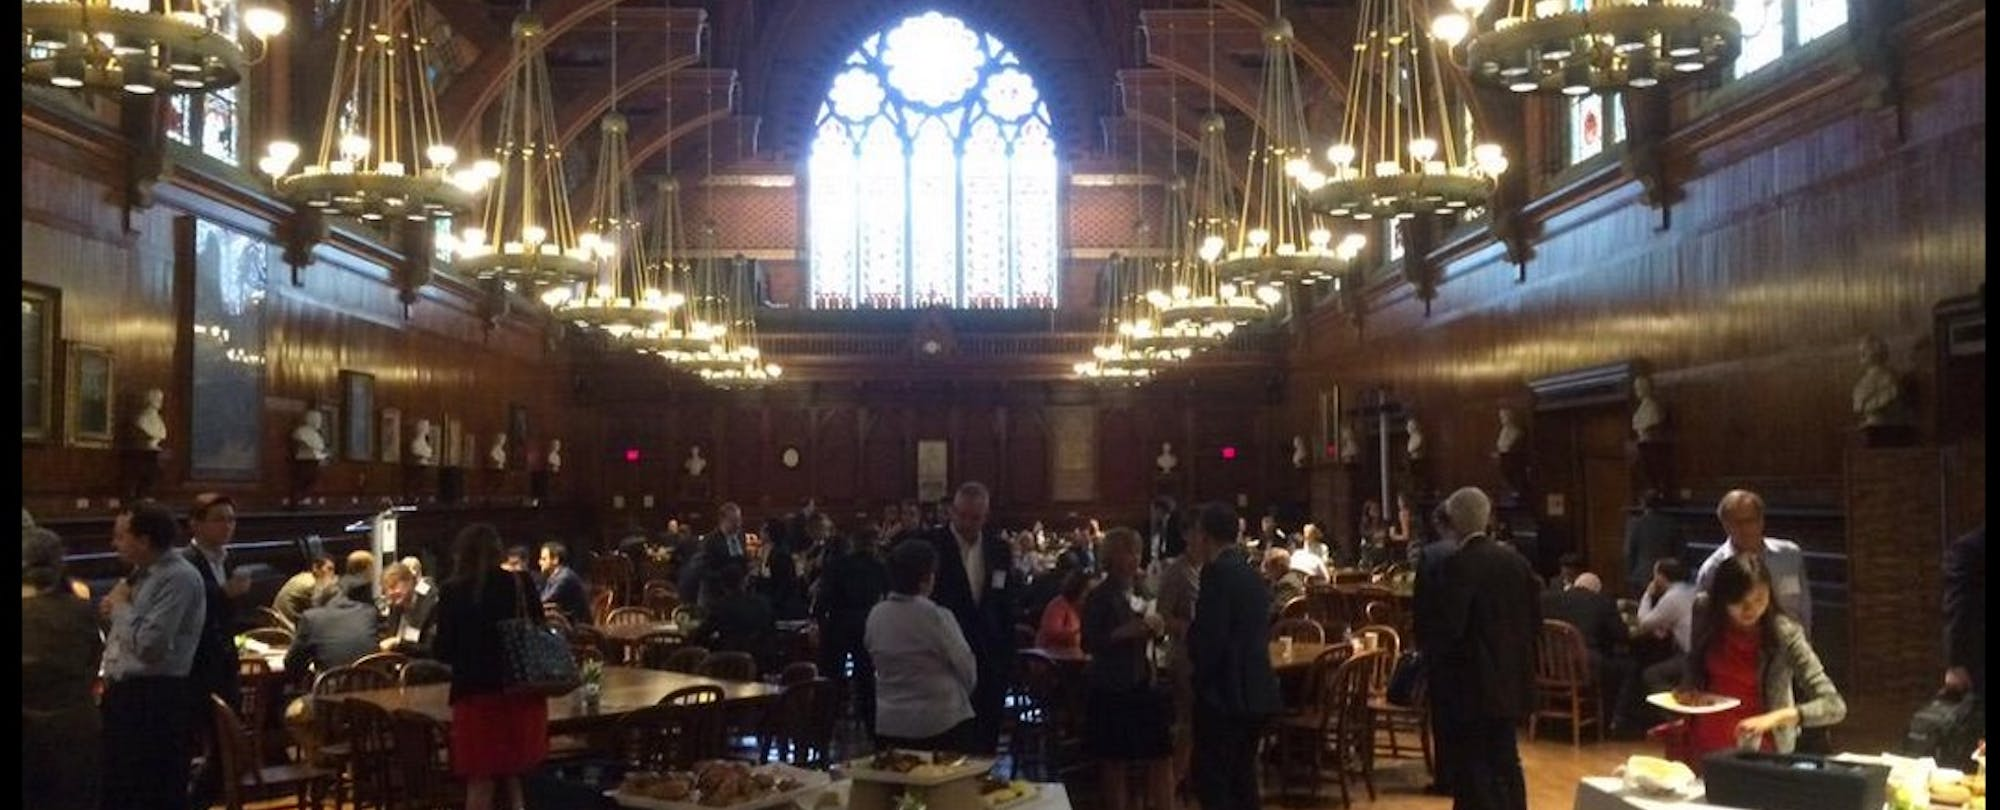 Edtech East Meets West in Harvard Yard